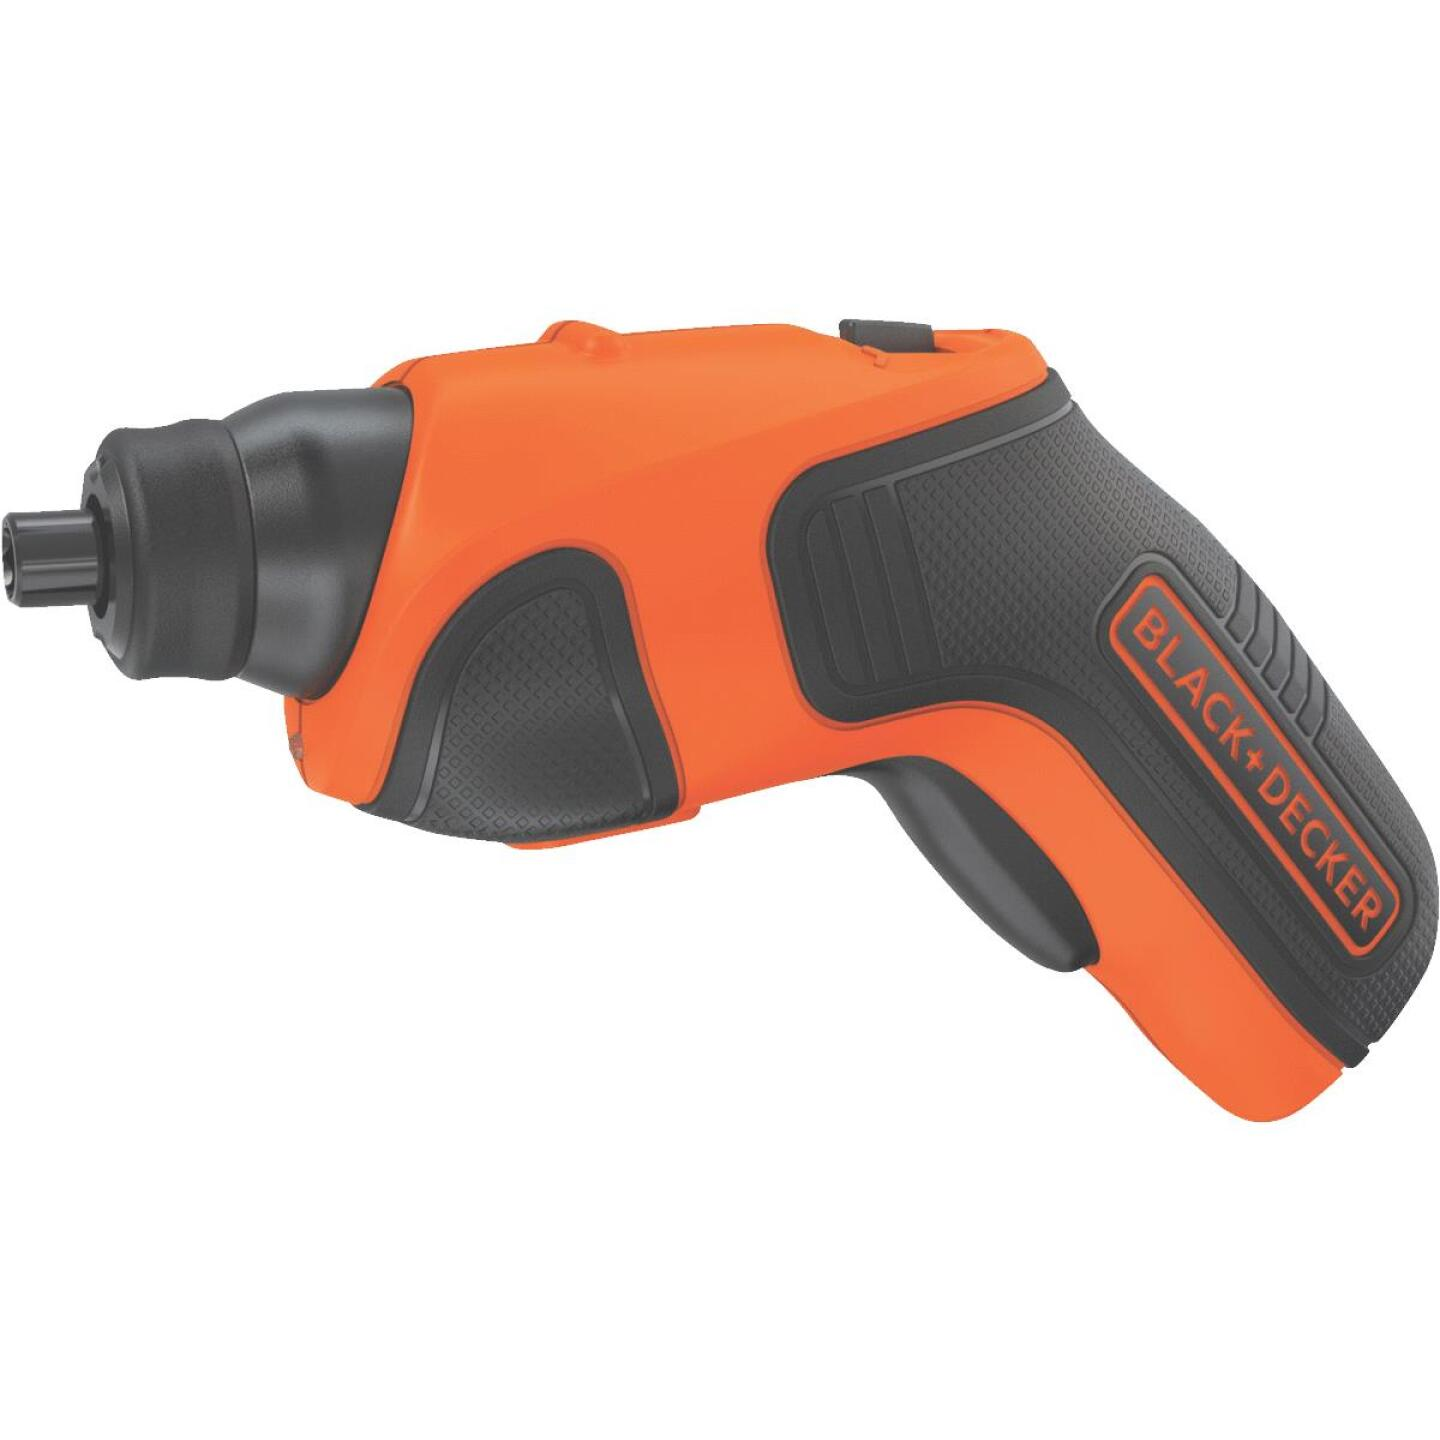 Black & Decker 4-Volt MAX Lithium-Ion 1/4 In. Cordless Screwdriver Image 1